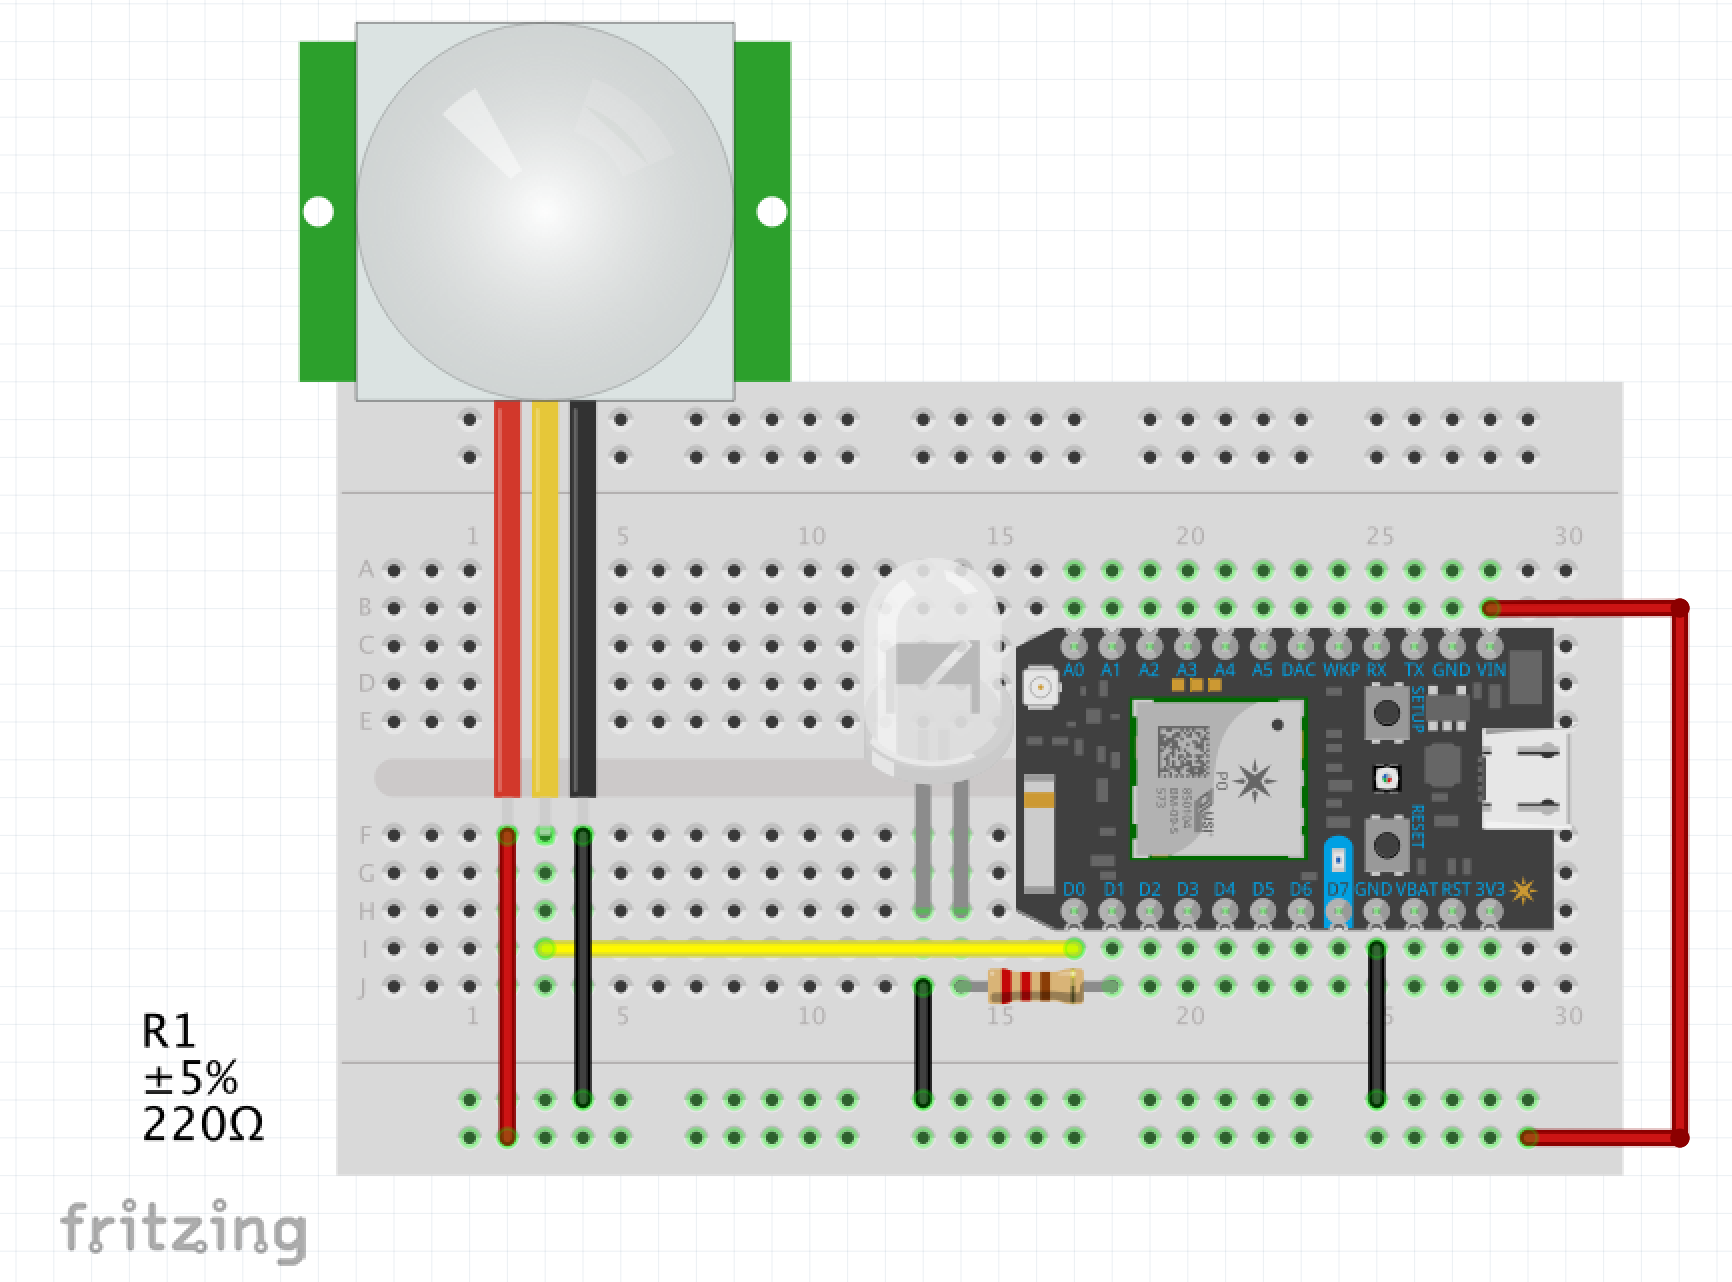 Particle Photon Pir Sensor And Event Reporting Motion Circuit Diagram Also Wiring Image Of The 0vz7n0ysyewfkcvkozej